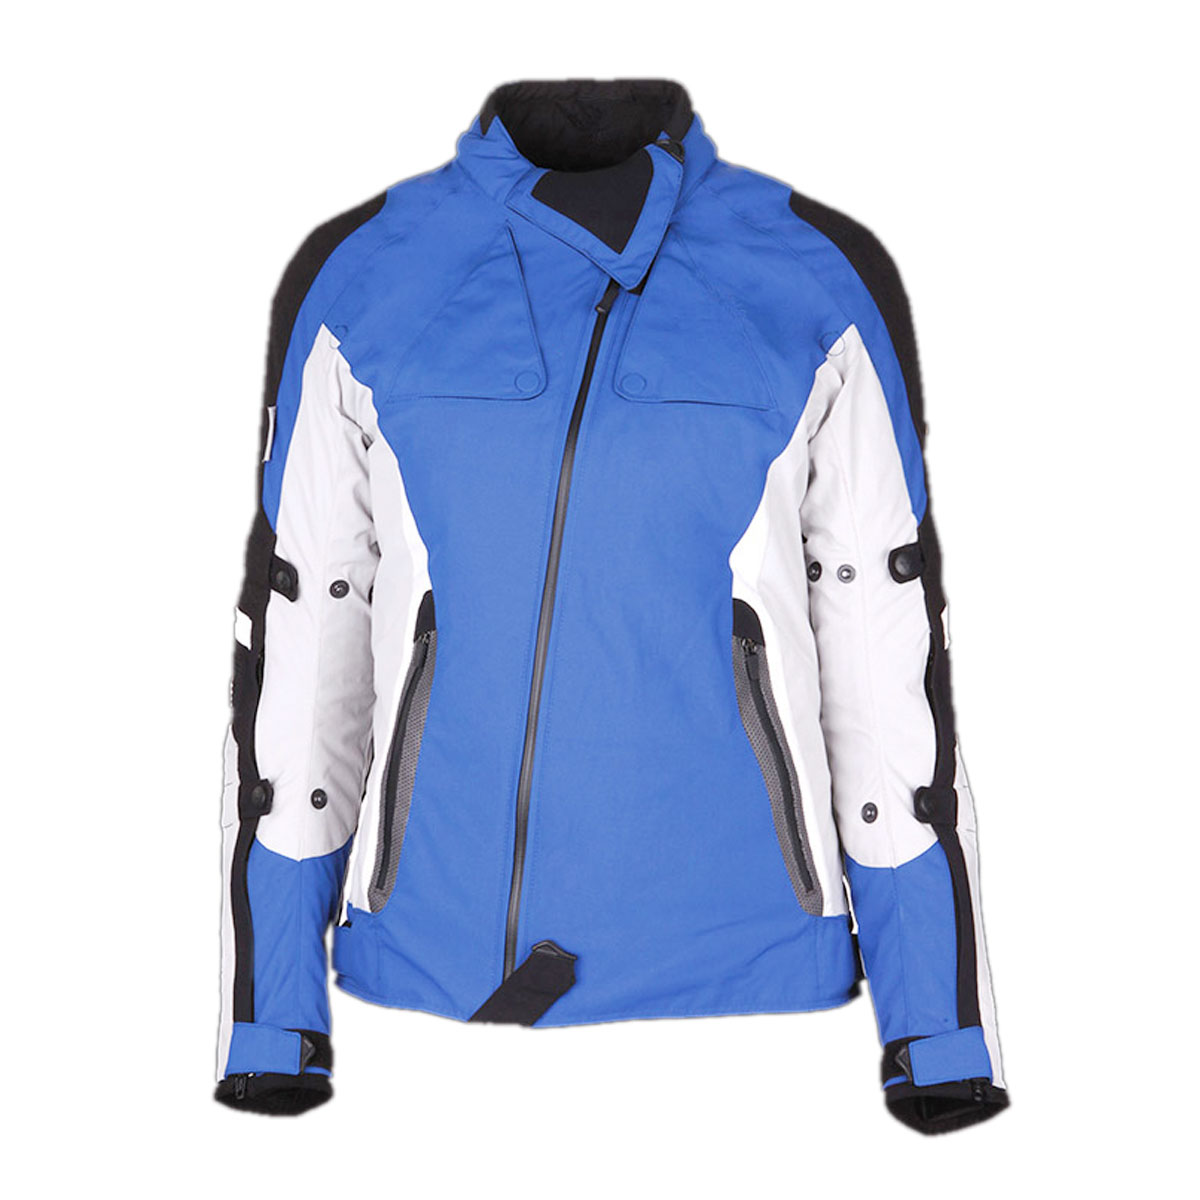 BLUE FEMALE CORDURA JACKET